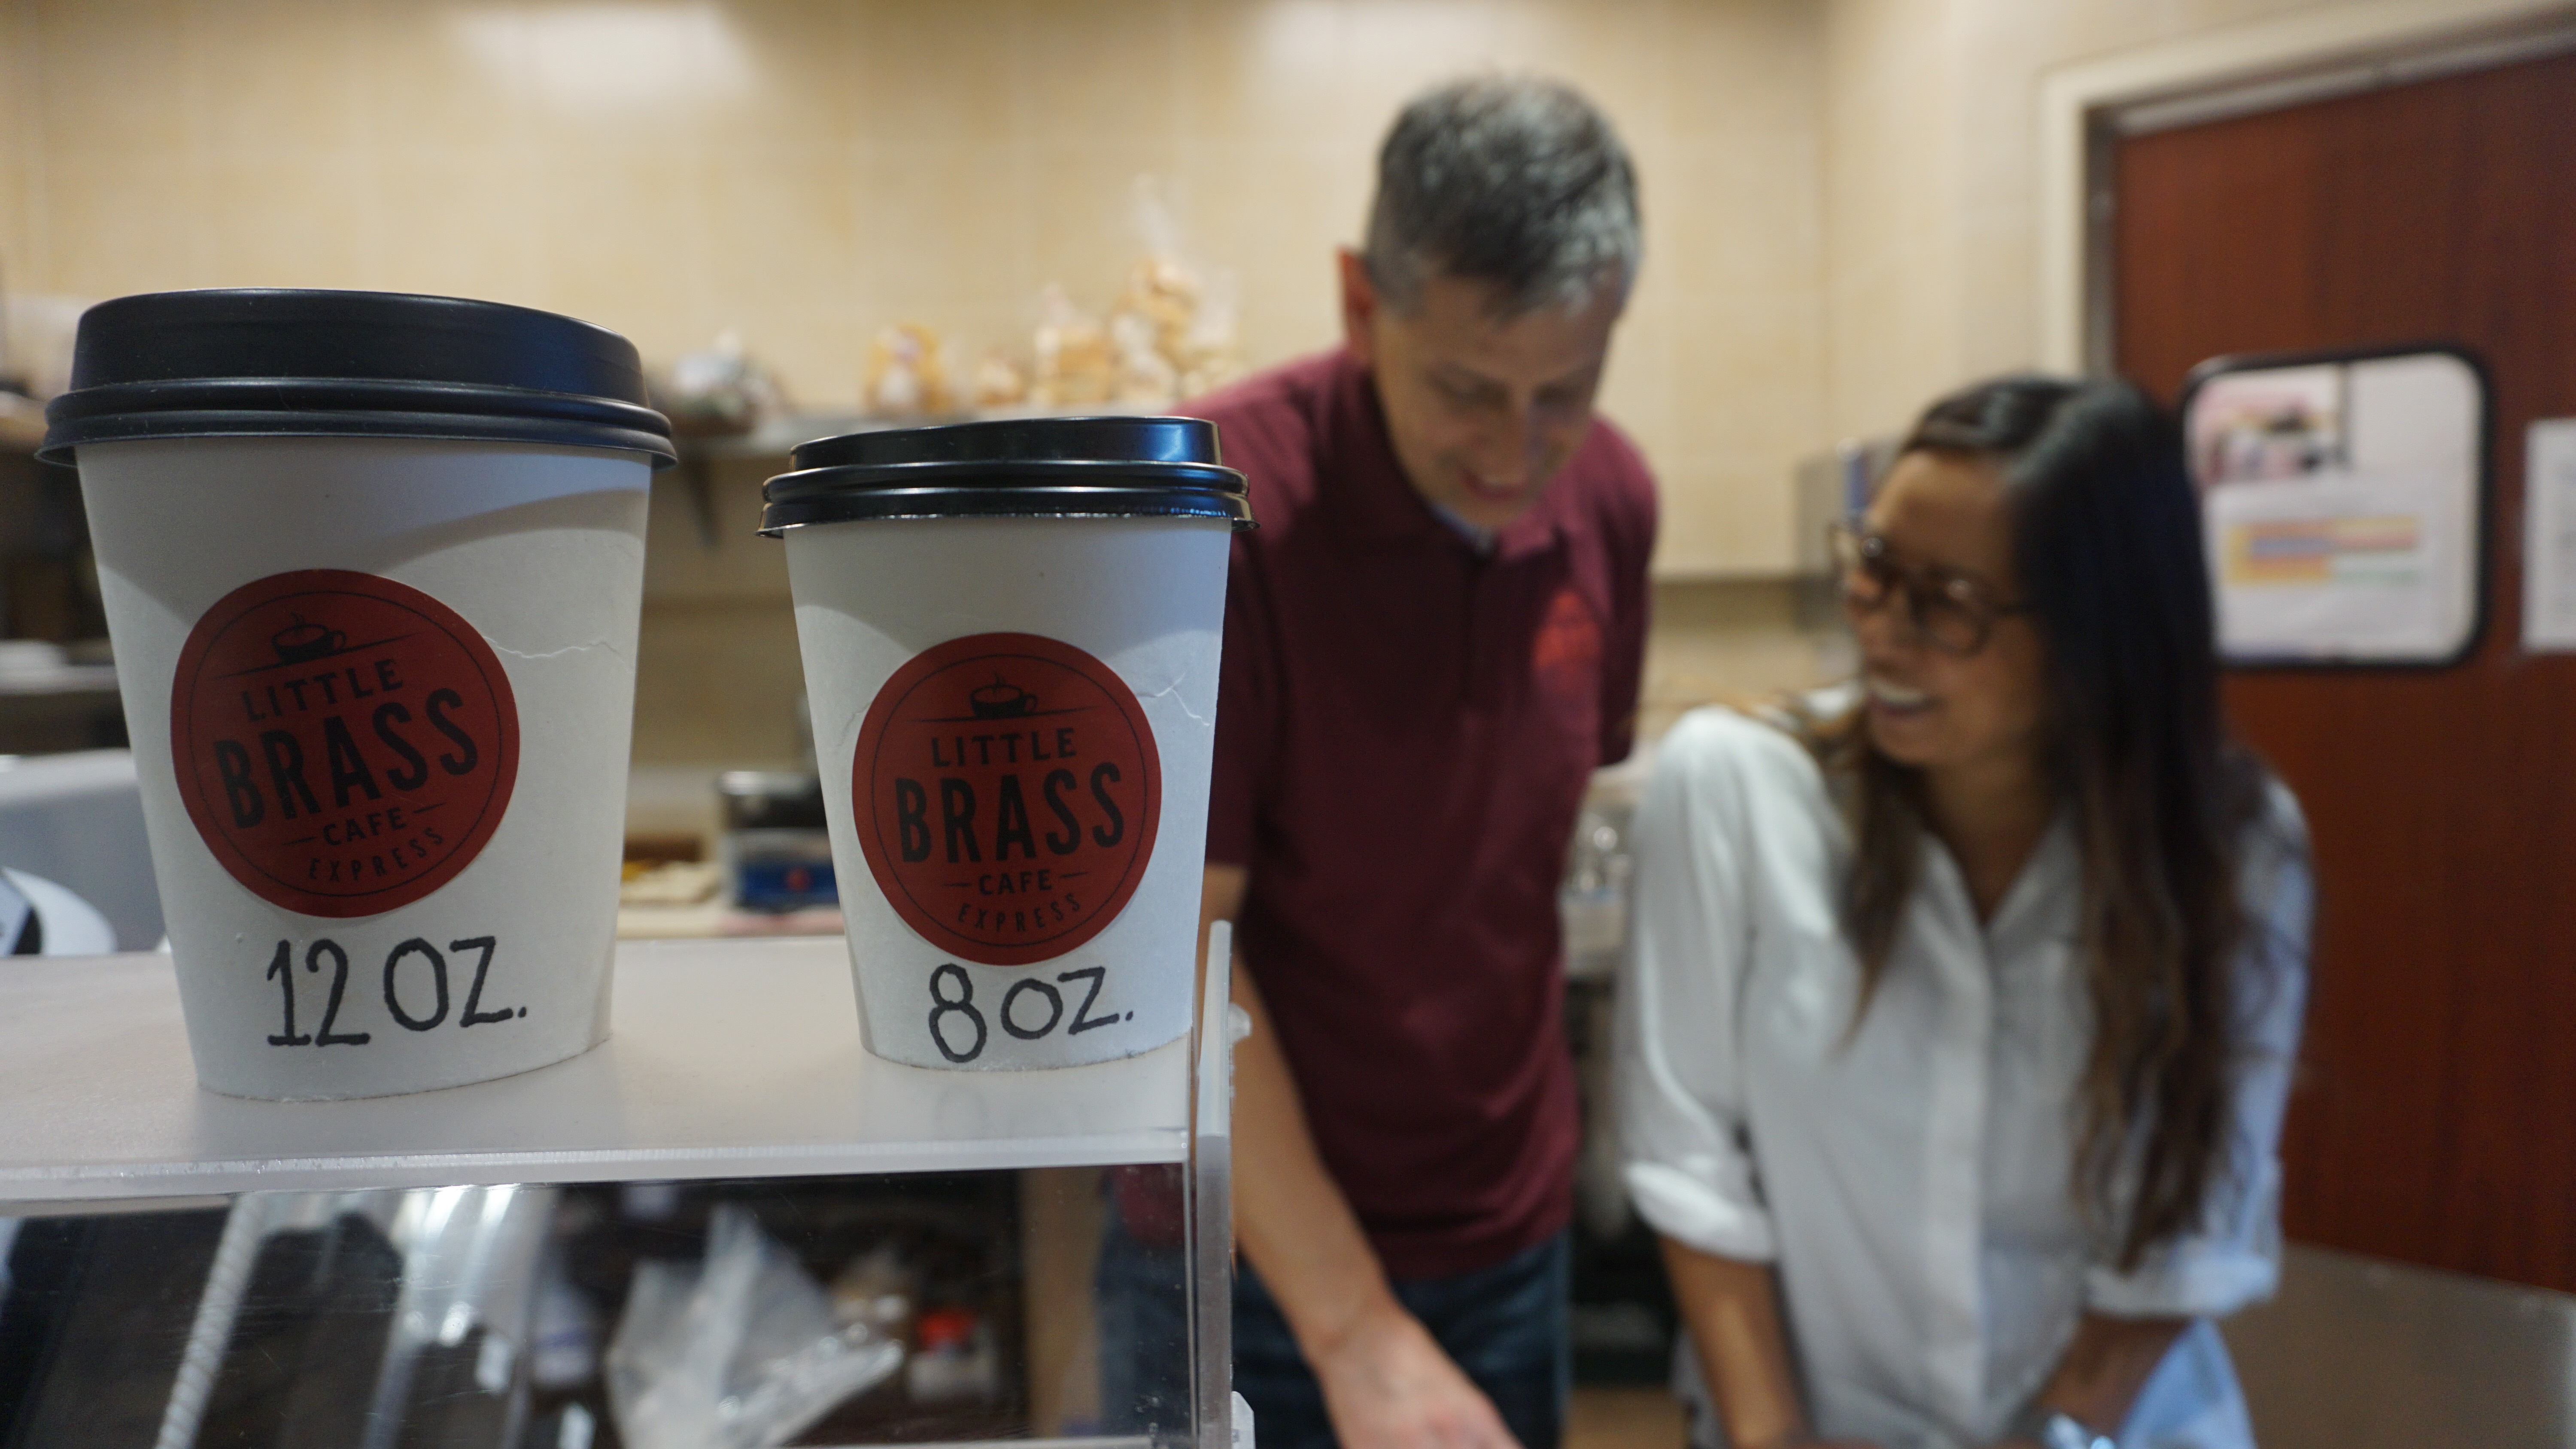 Little Brass Cafe Takes Off After Owners Reimagine Their